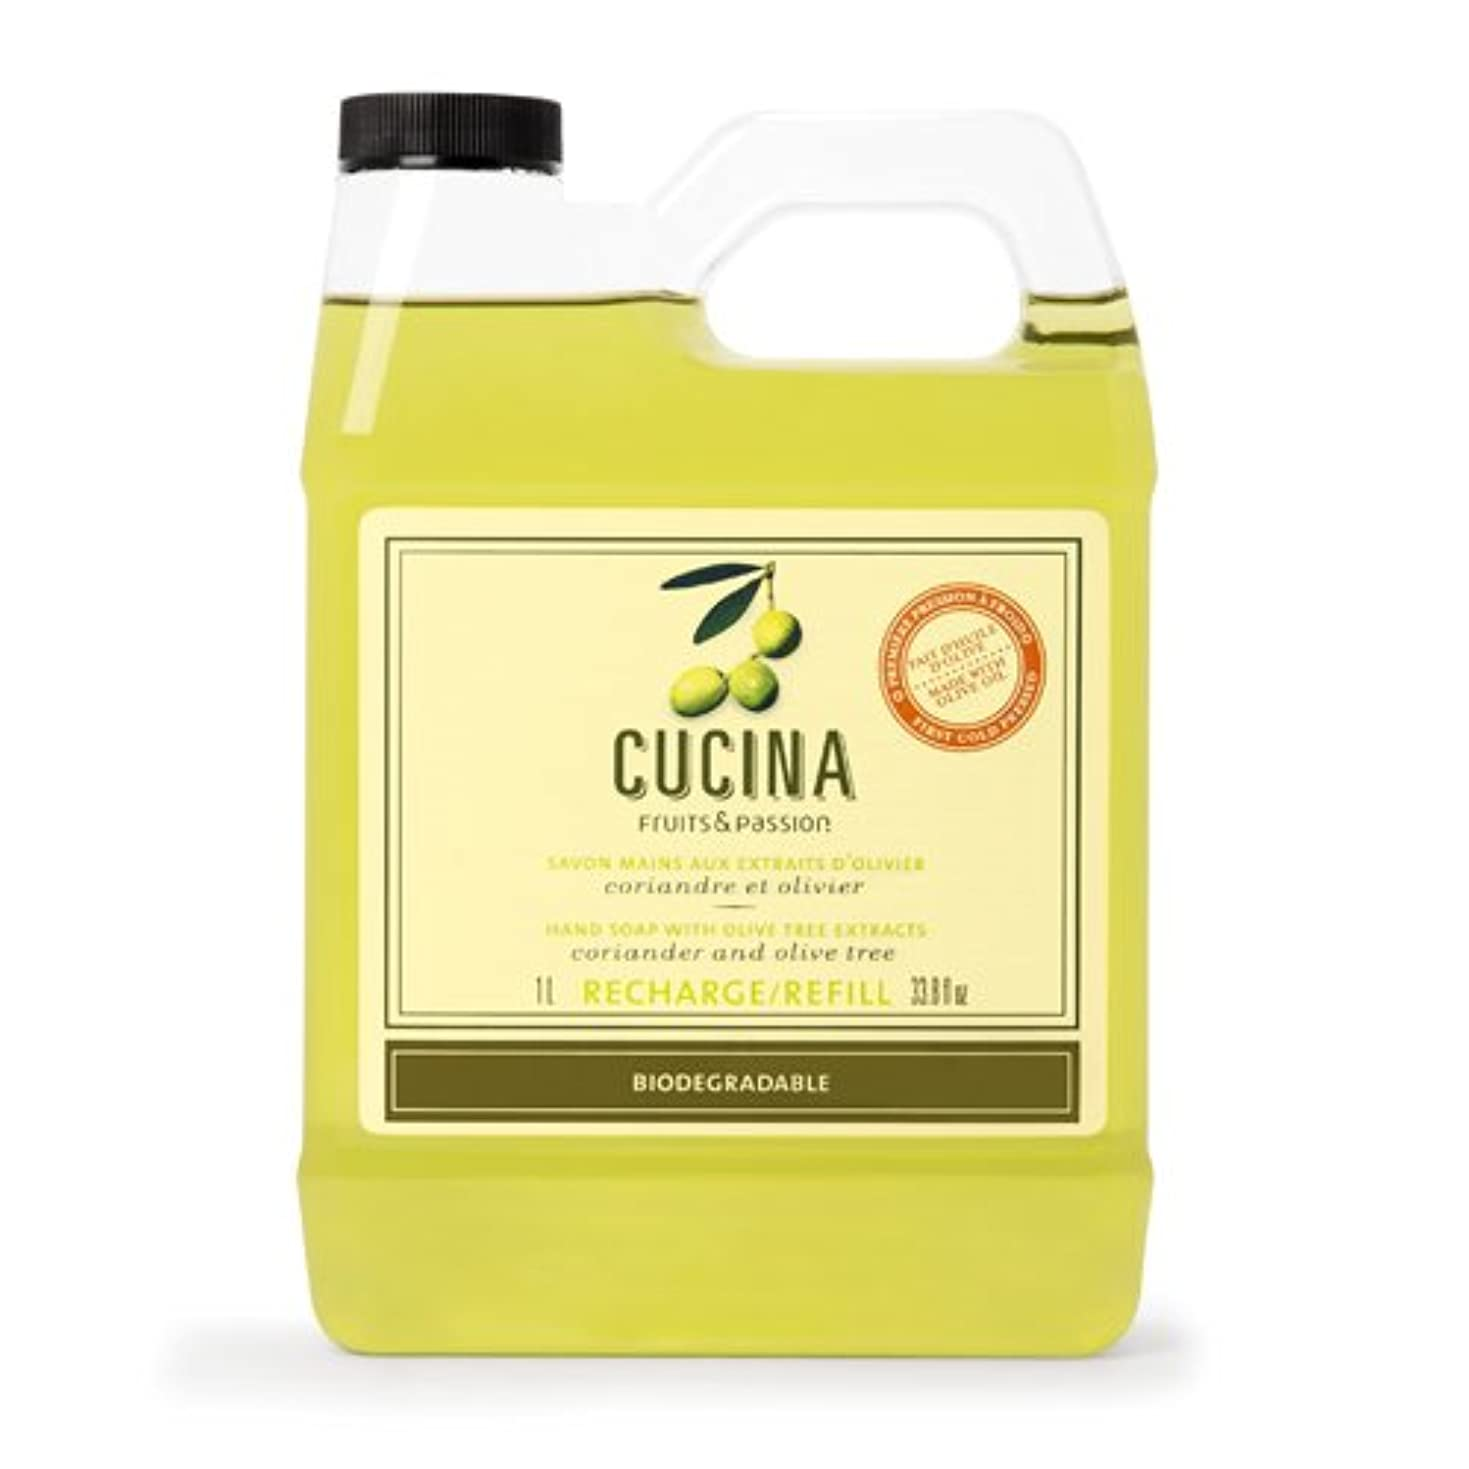 荷物あごありふれたCucina Coriander and Olive Tree 33.8 oz Purifying Hand Wash Refill by Cucina [並行輸入品]